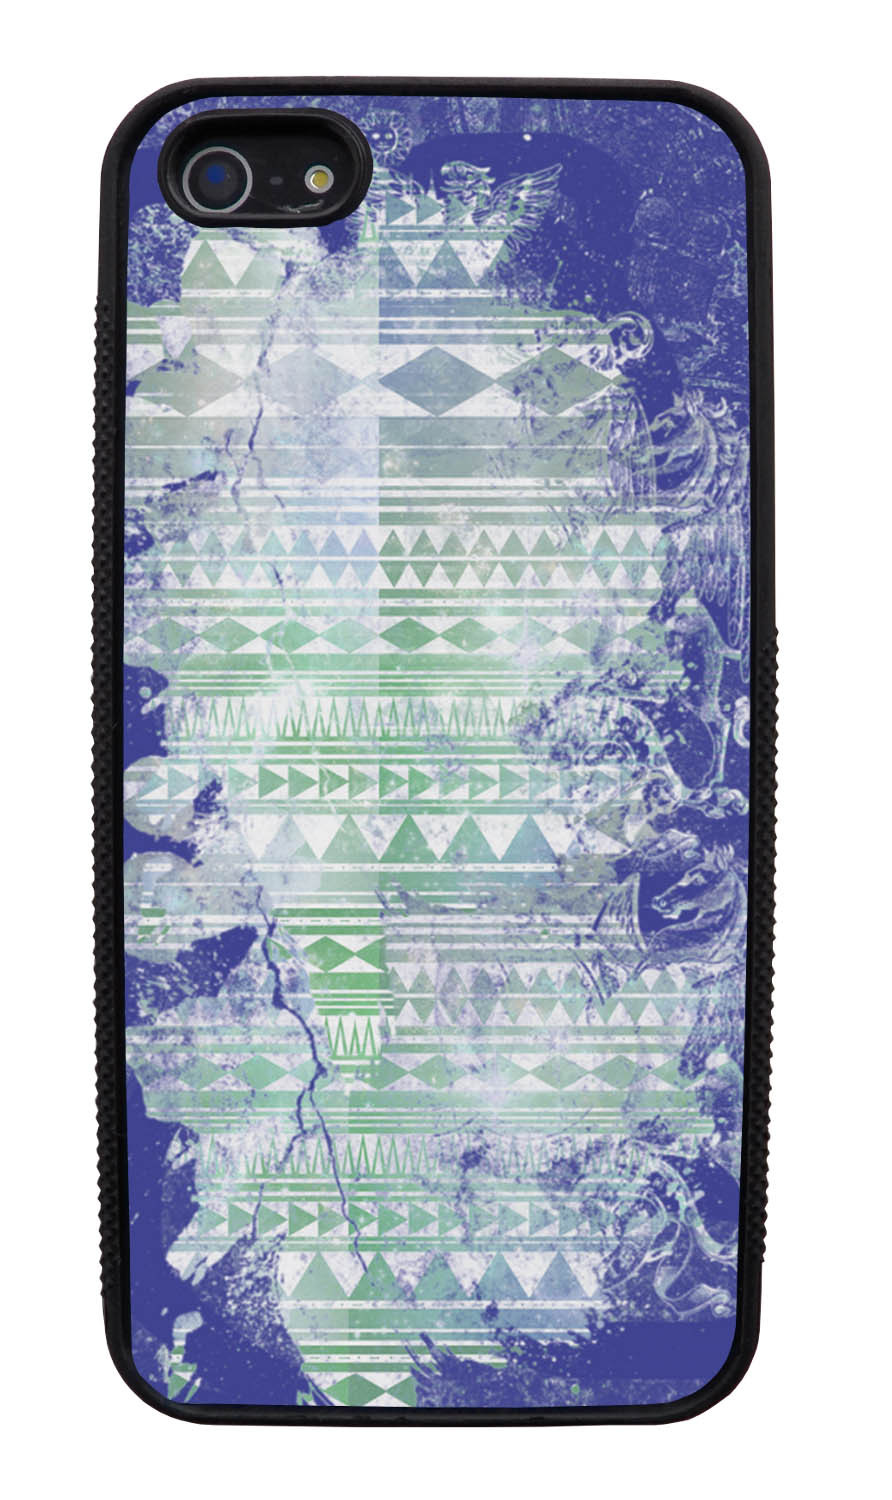 Apple iPhone 5 / 5S Aztec Case - Purple and Off-White Paint with Green - Paint Splatter Overlay - Black Slim Rubber Case